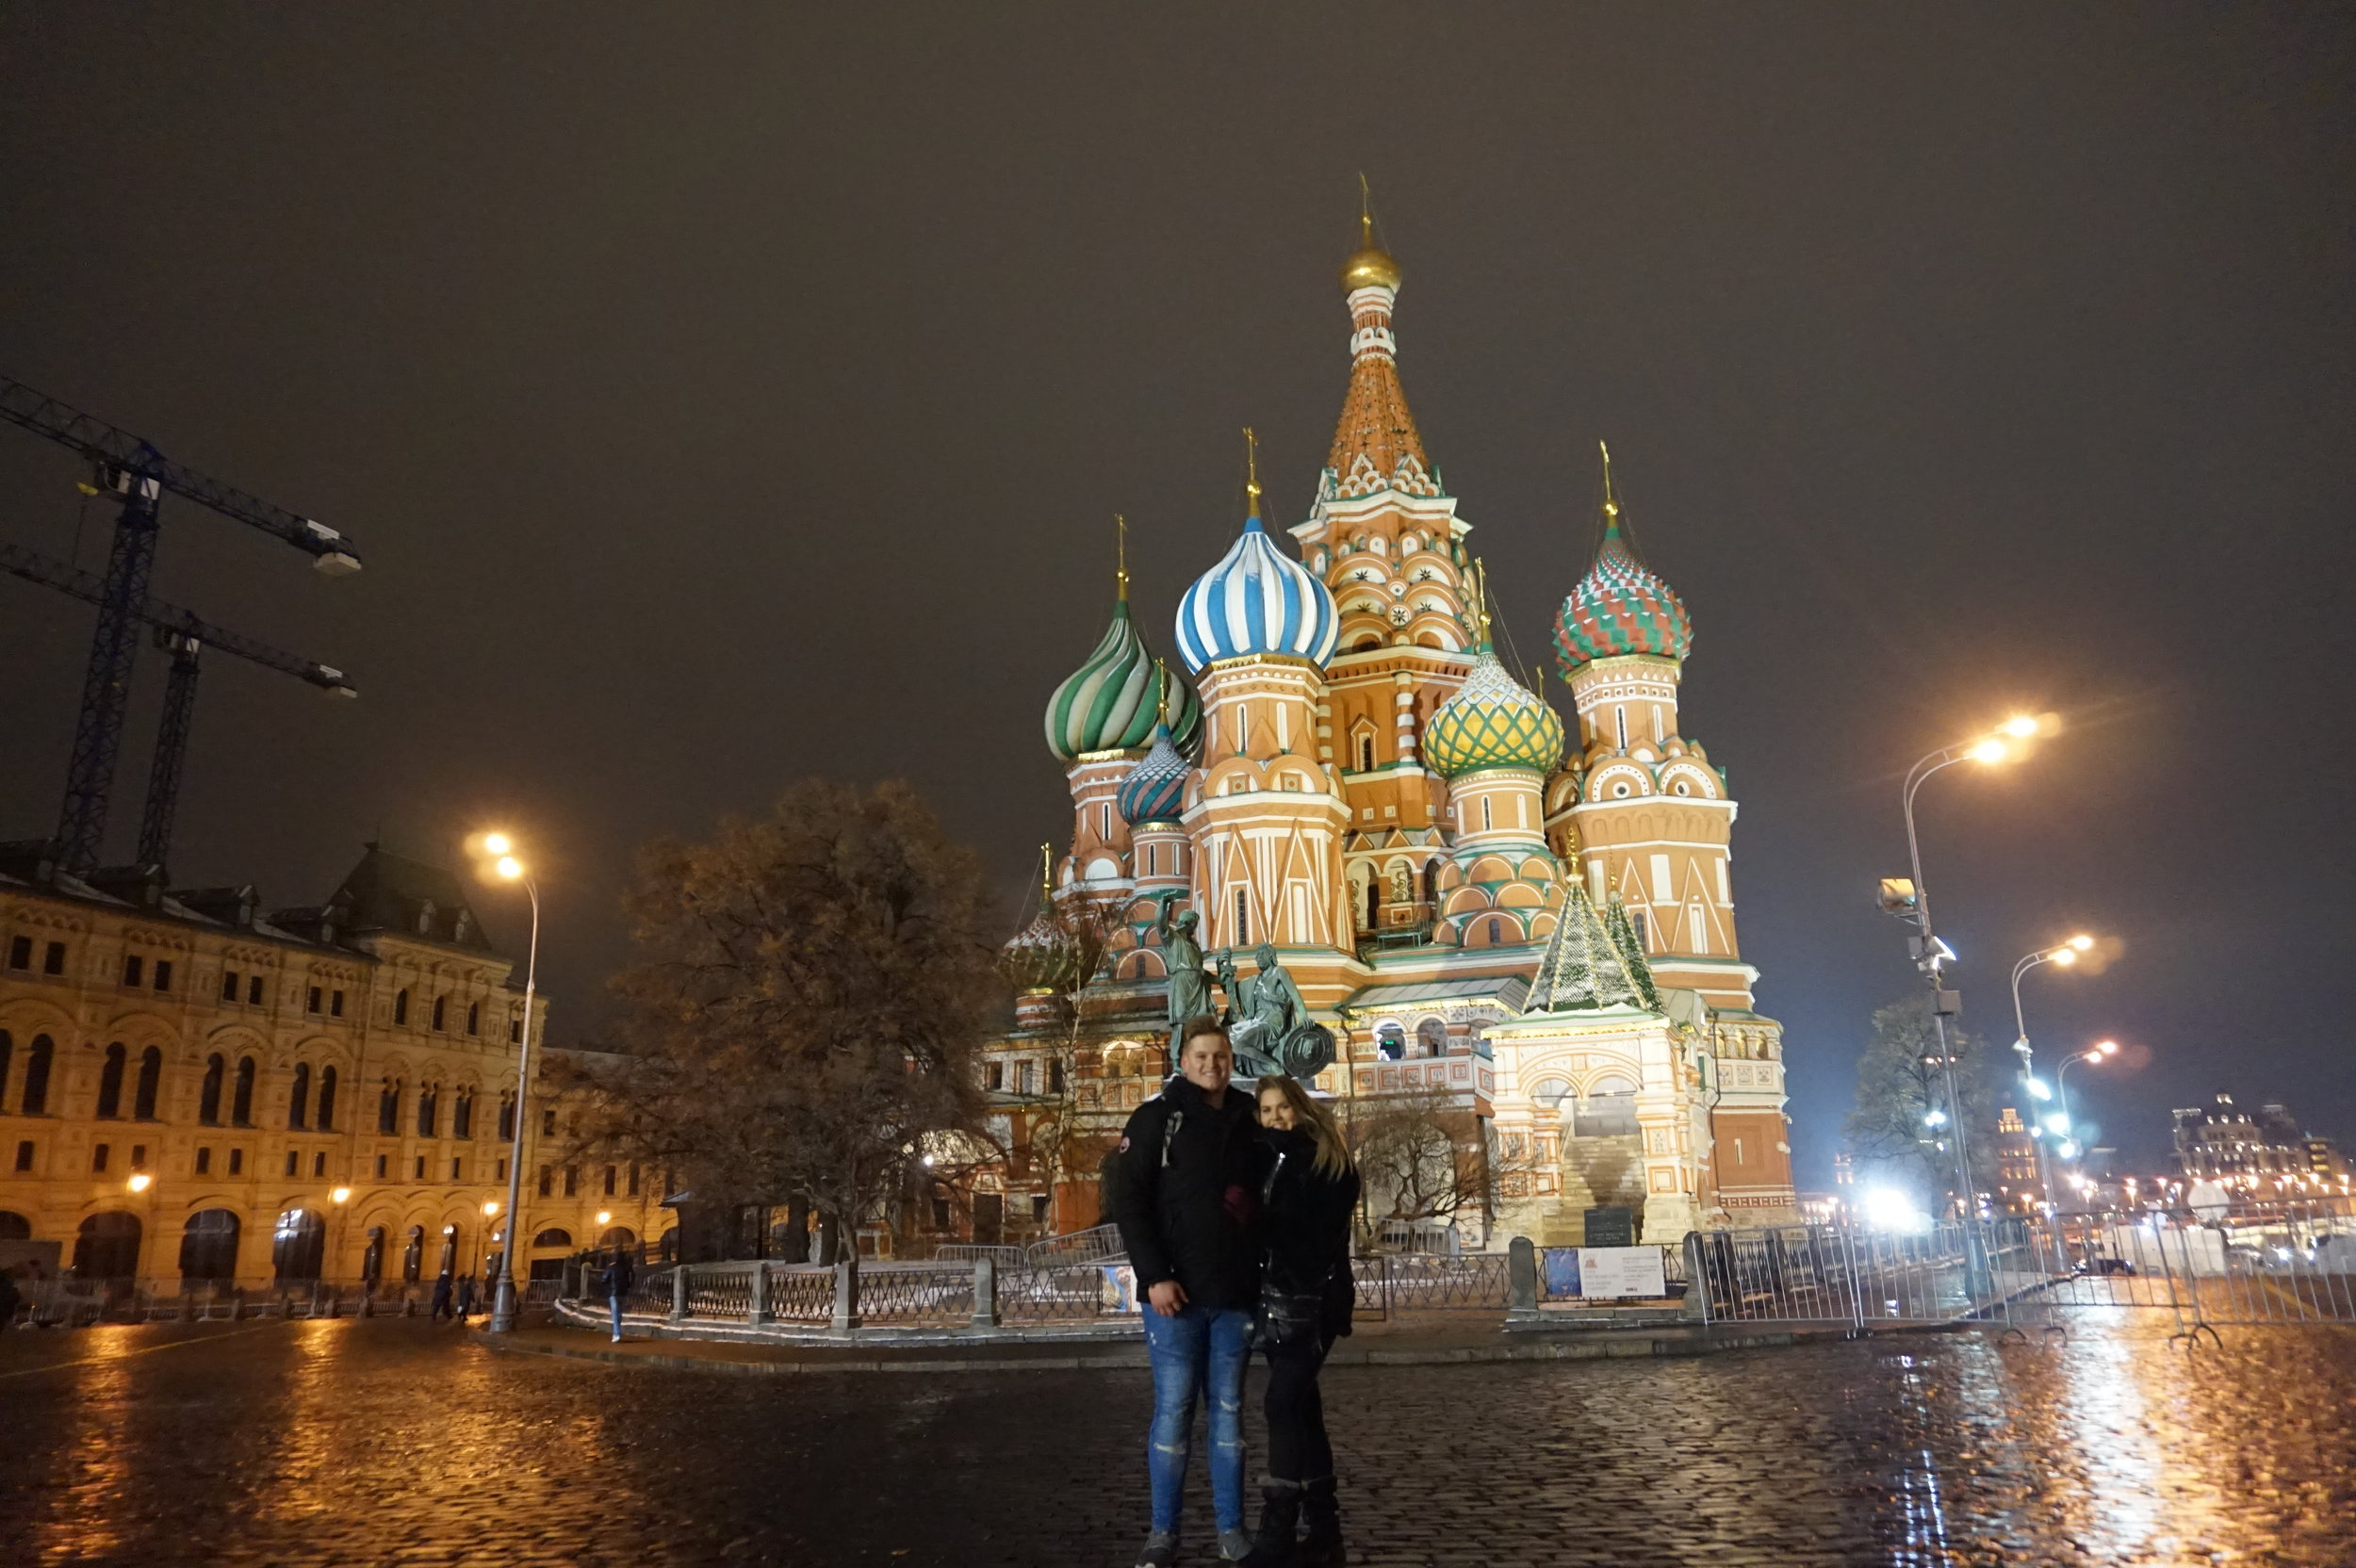 Getting a photo in front of Saint Basil's Cathedral was a breeze.